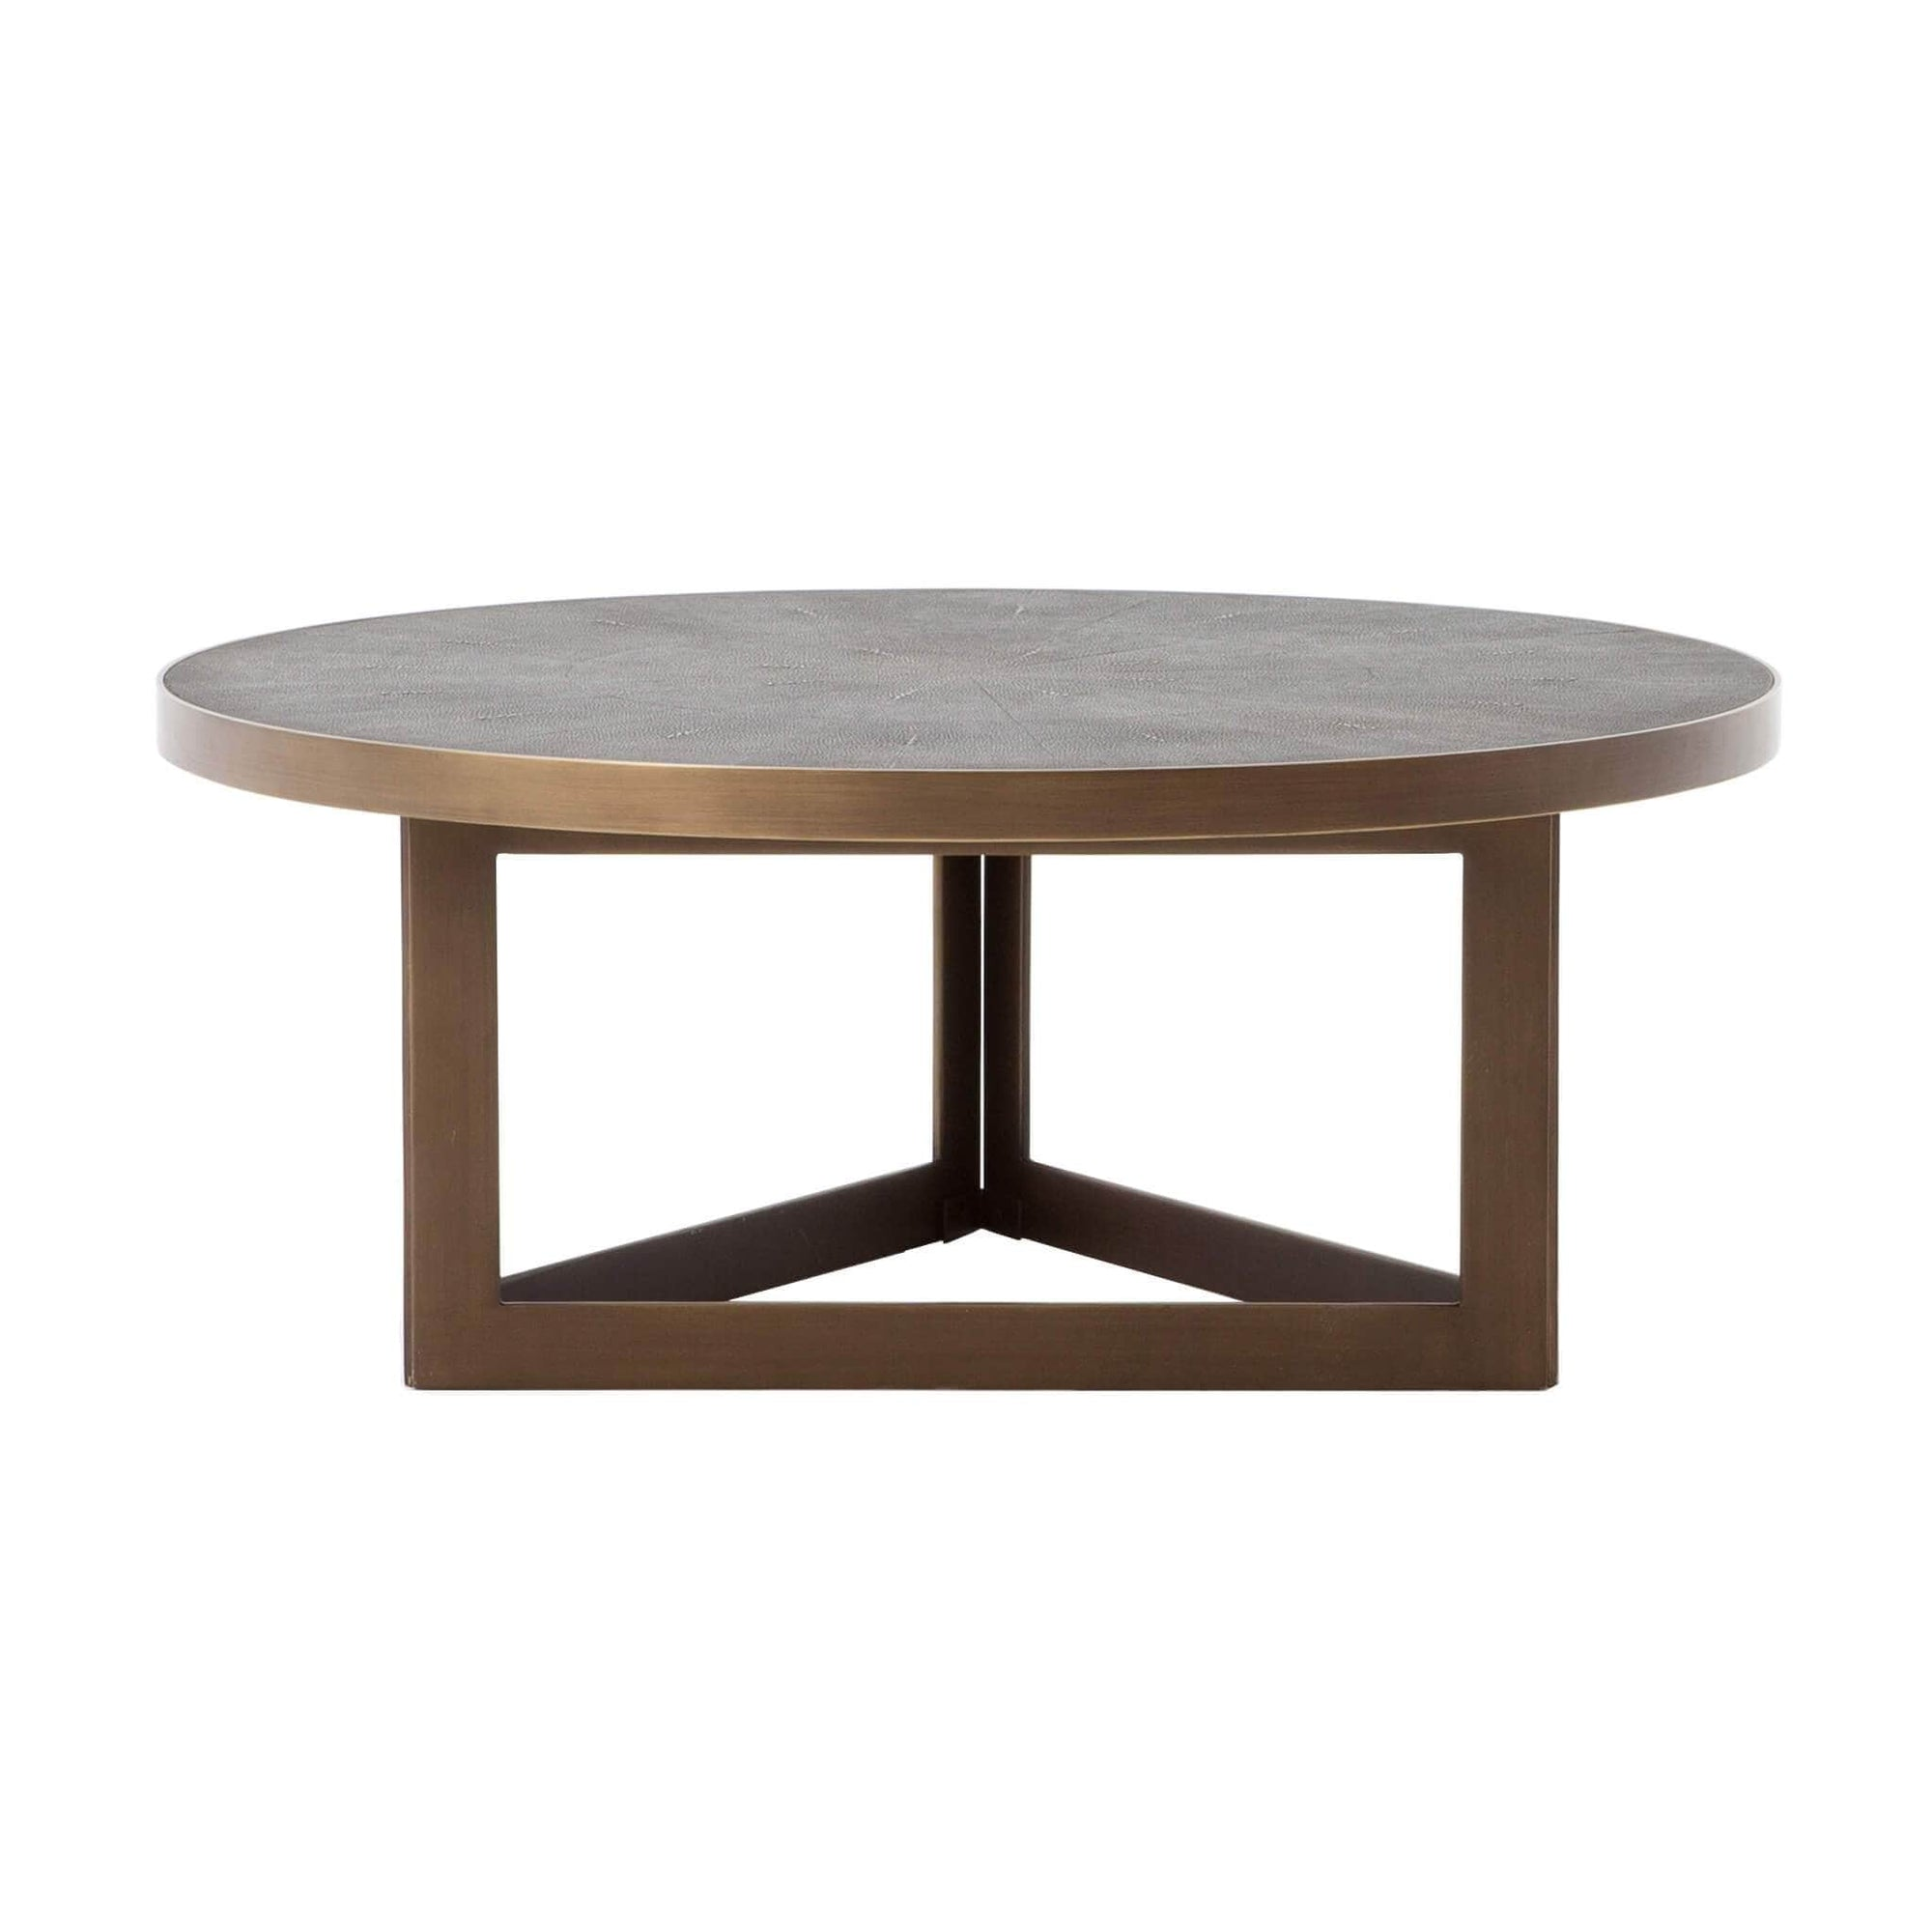 Shagreen Round Coffee Table Antique Brass High Fashion Home